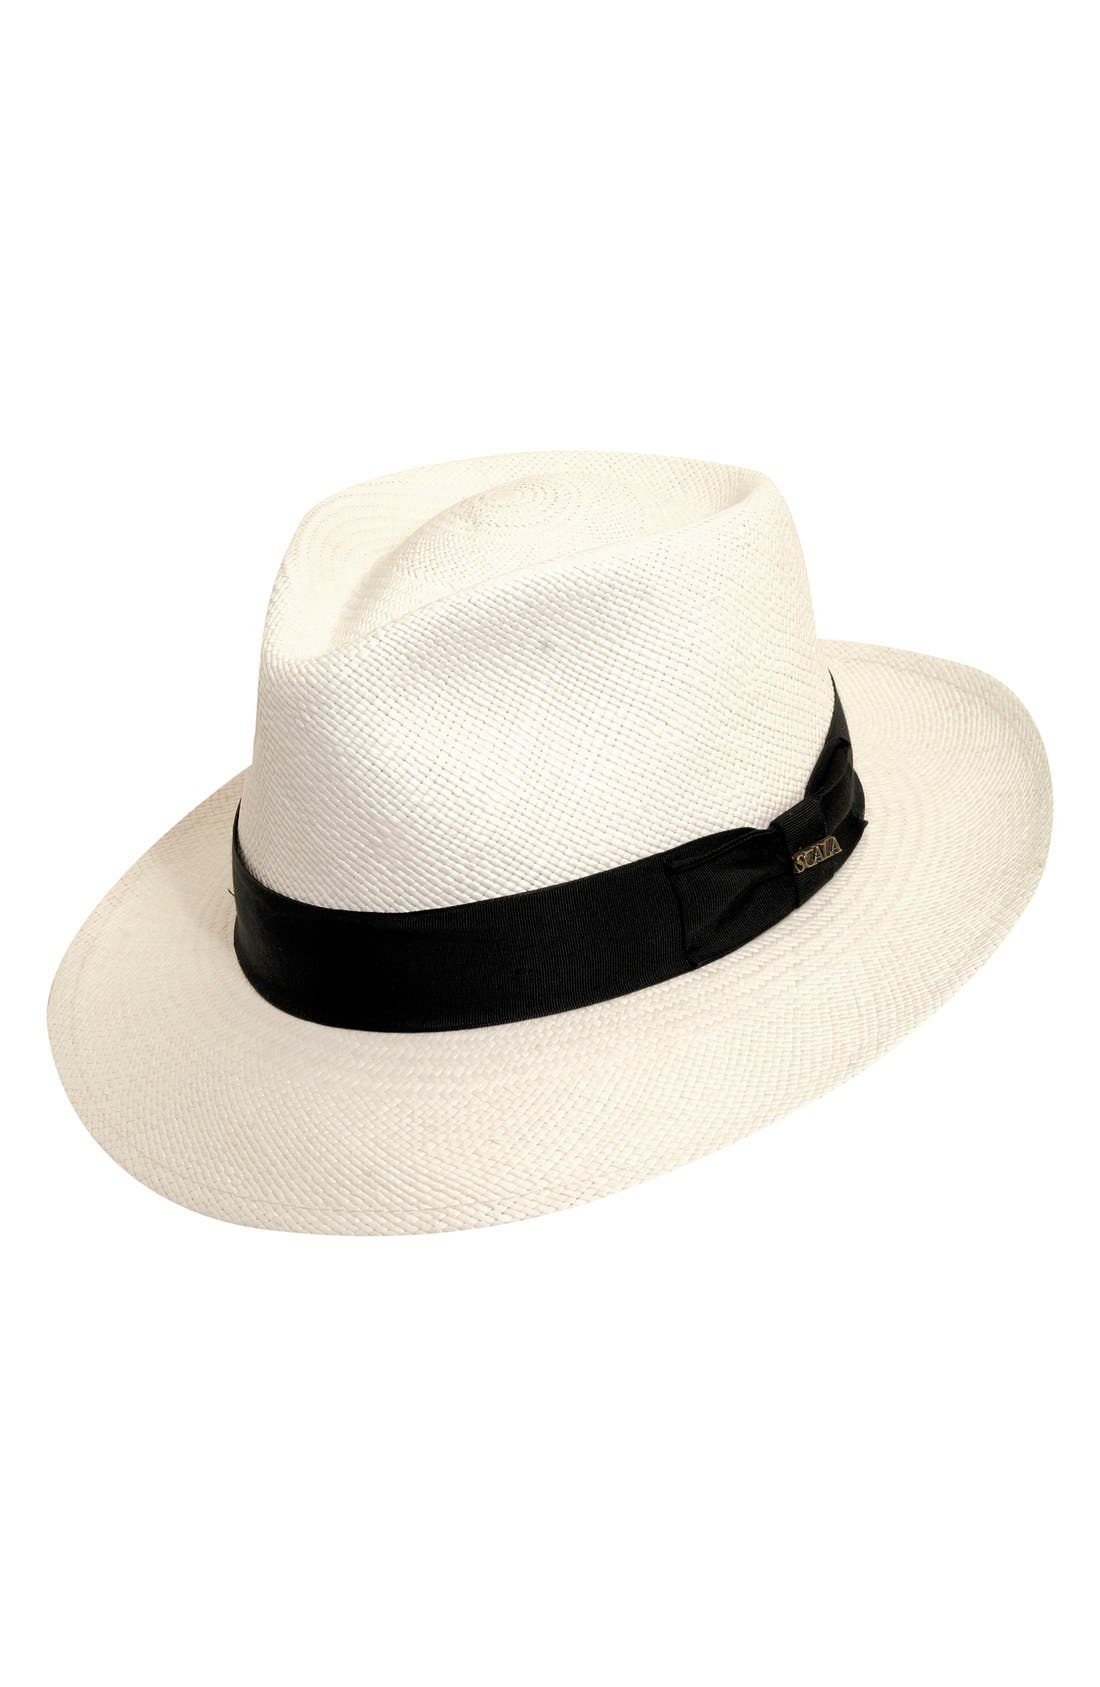 Straw Panama Hat,                             Main thumbnail 1, color,                             BLEACH